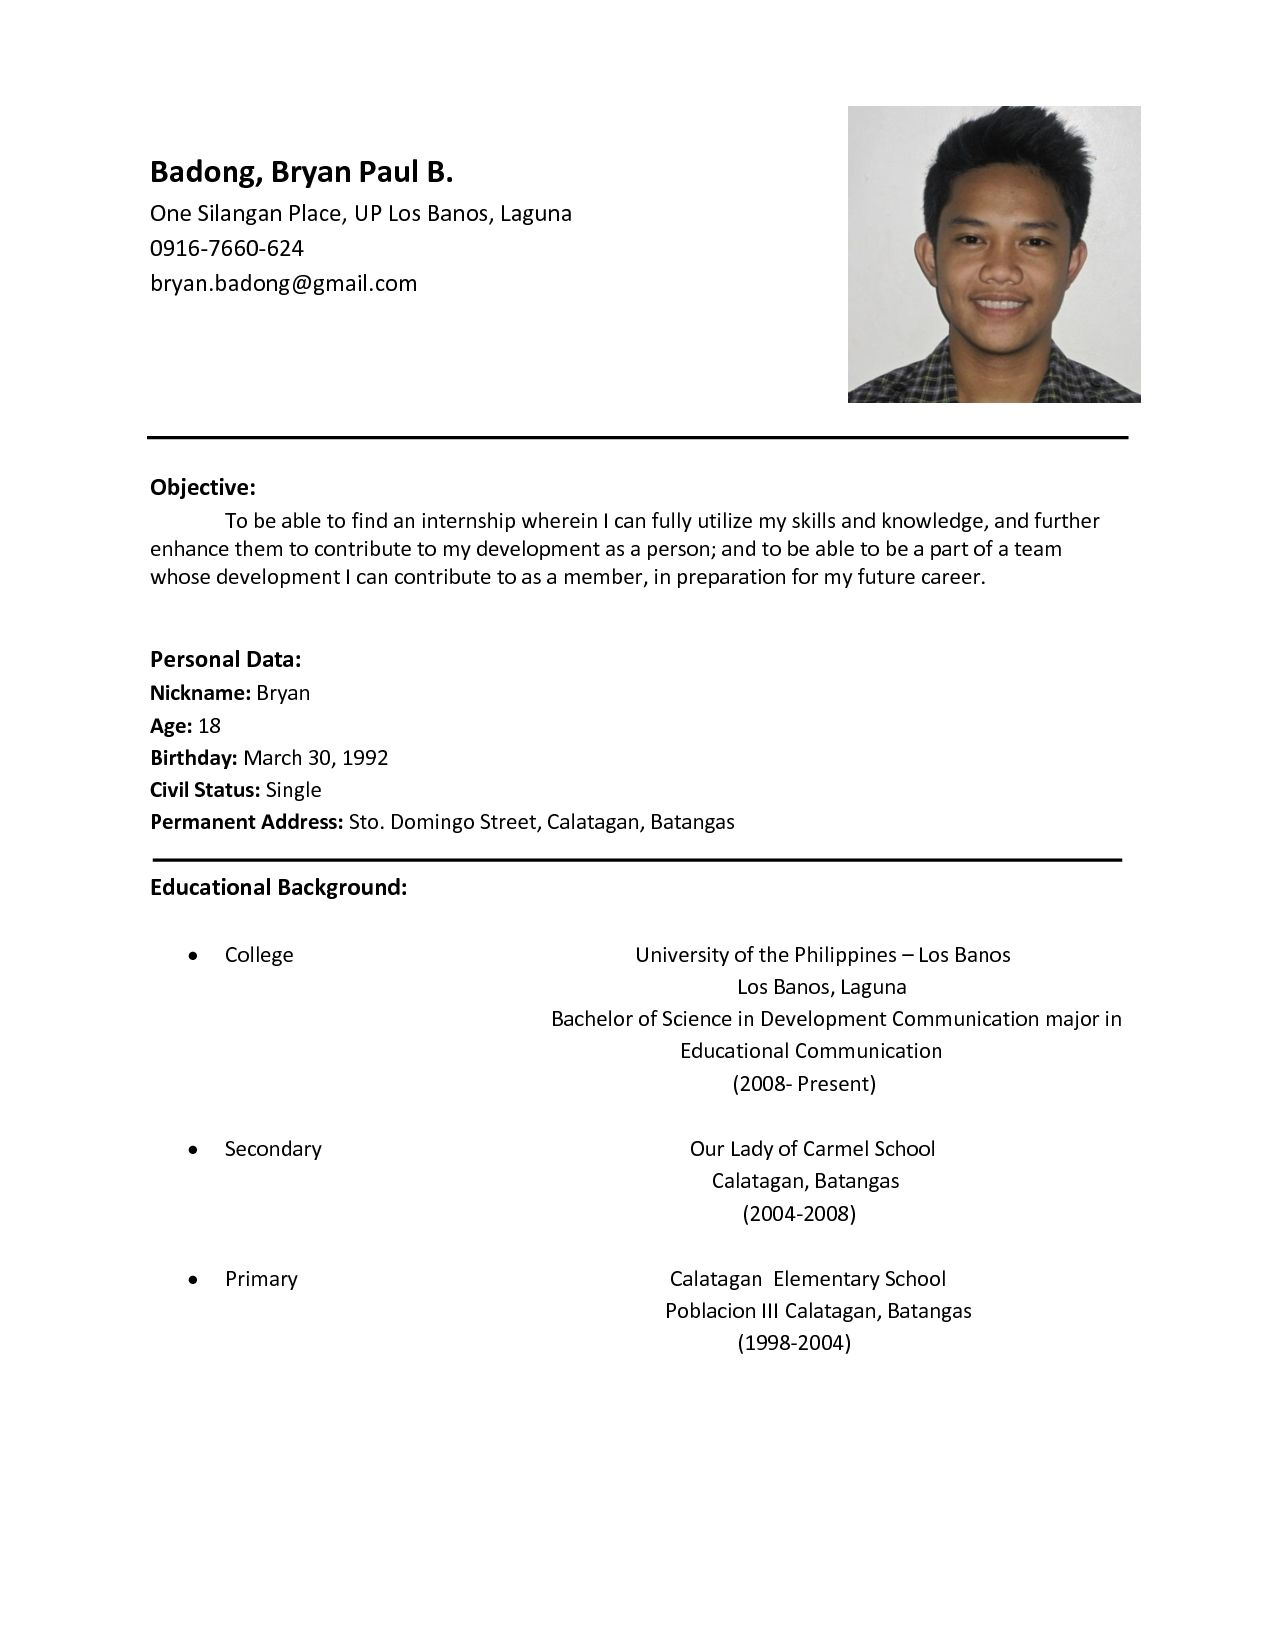 Proper resume job format examples data sample resume new example of proper resume job format examples data sample resume new example of a resume format altavistaventures Gallery